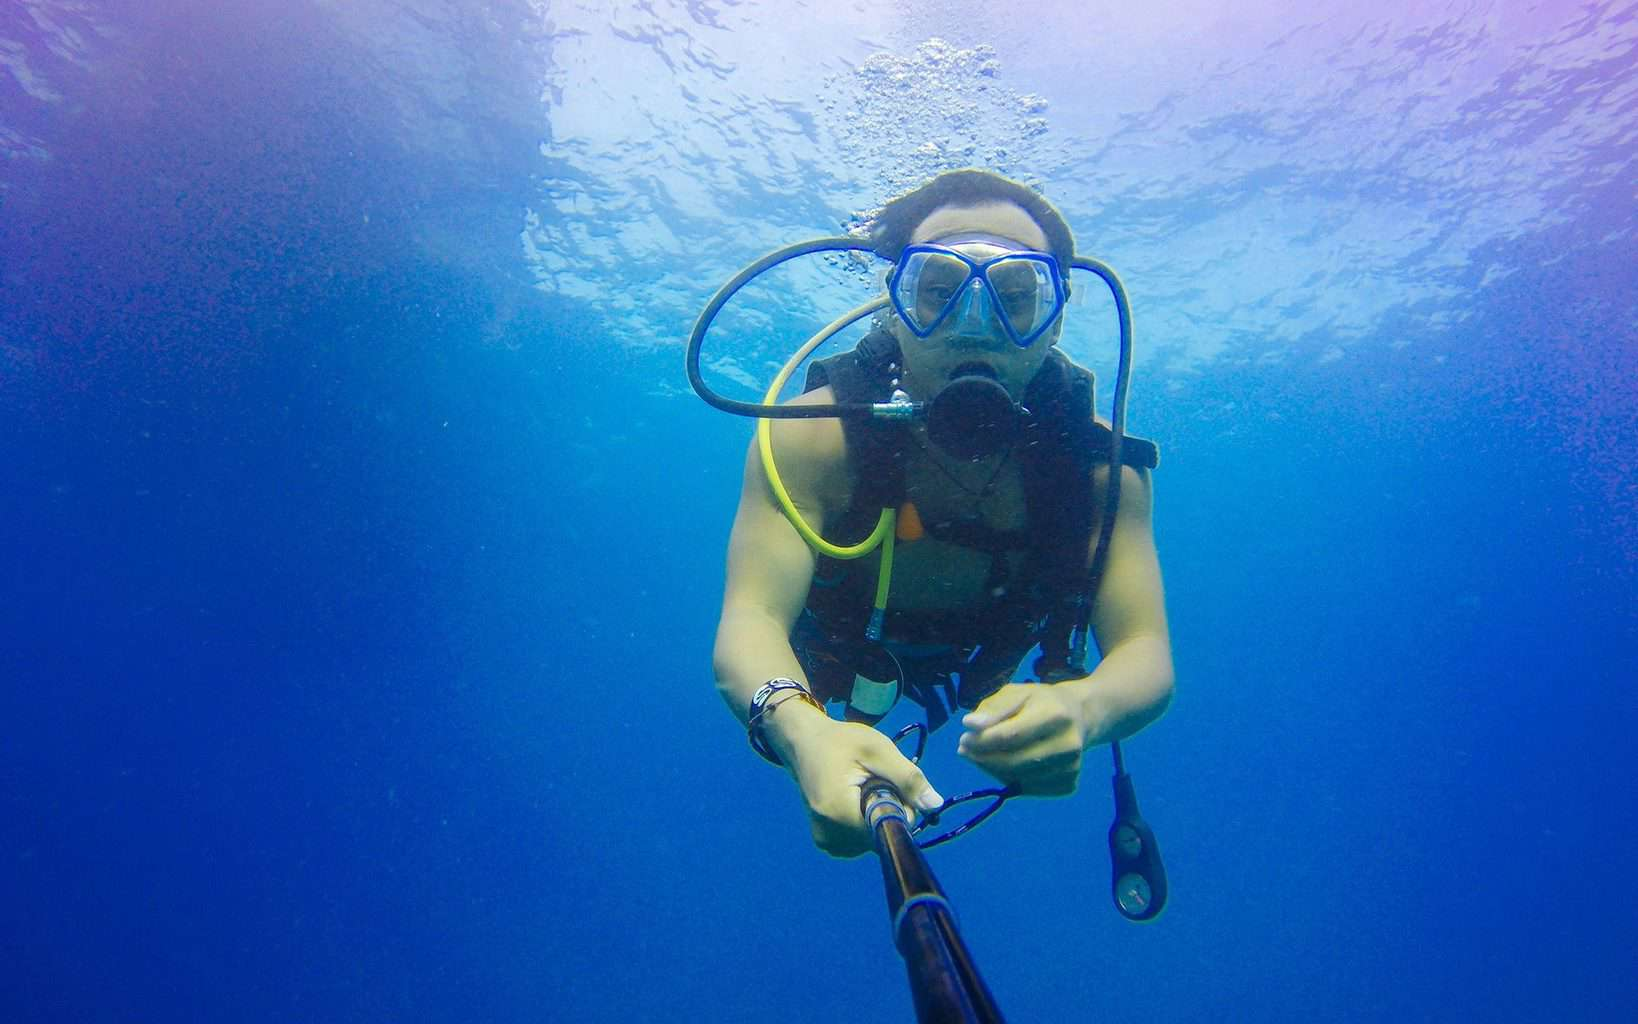 Can You Listen to Music While Scuba Diving